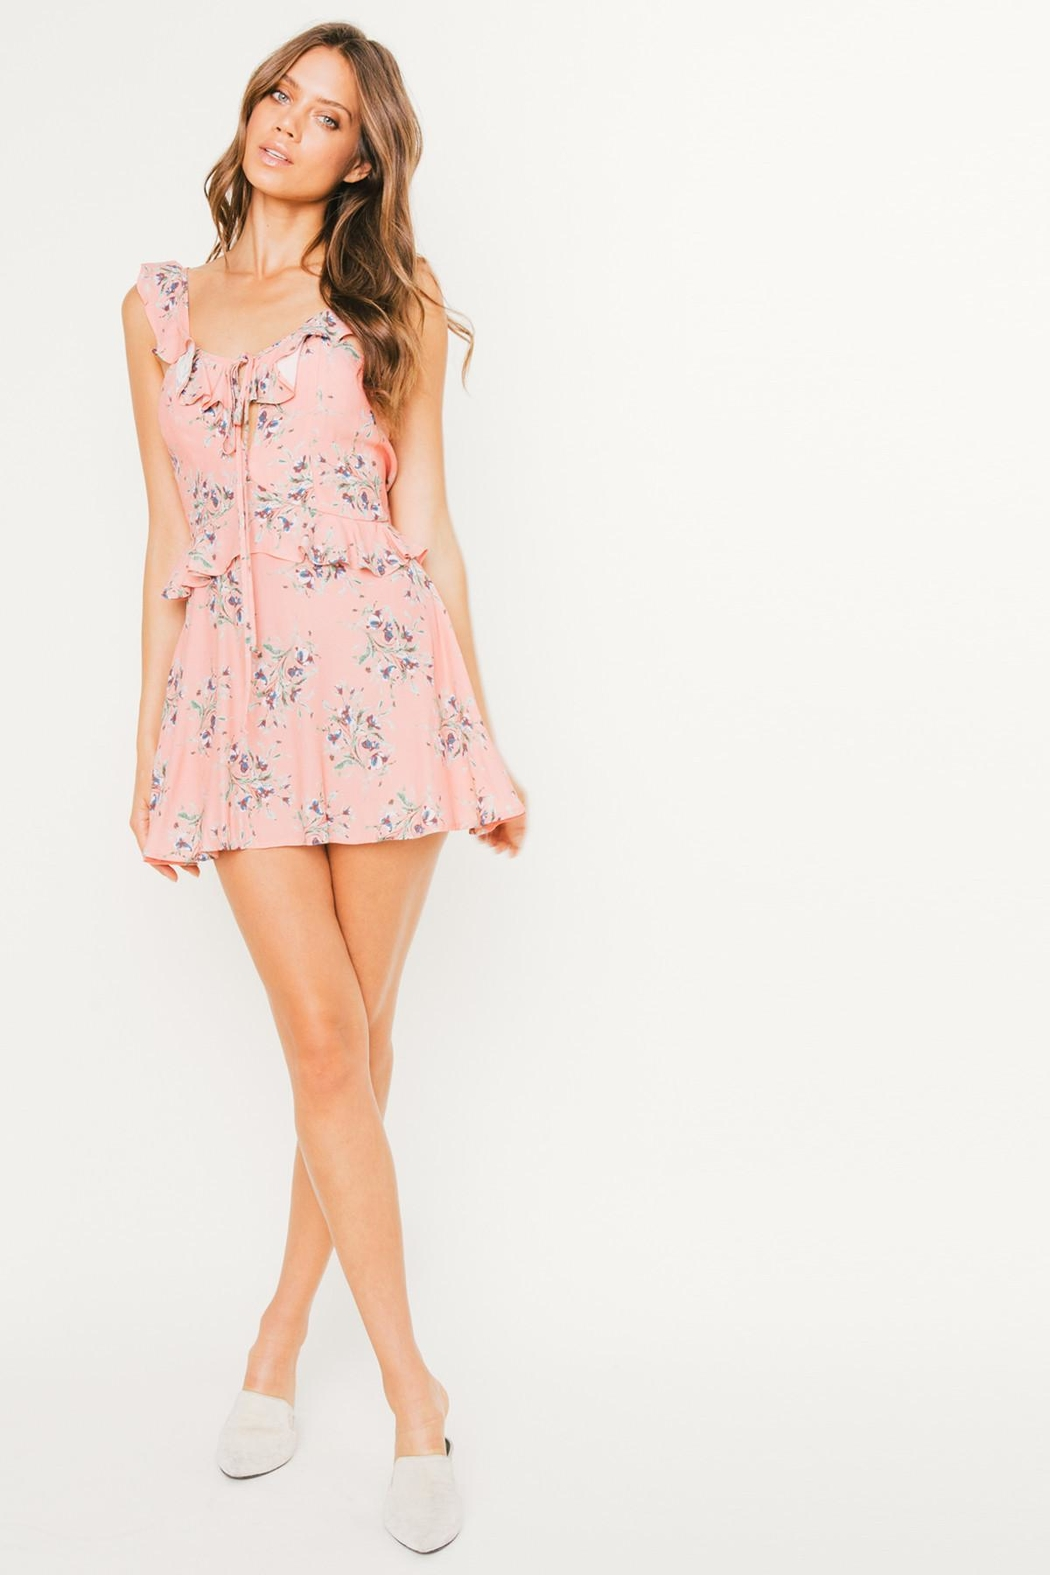 Flynn Skye Mimi Mini Dress - Side Cropped Image